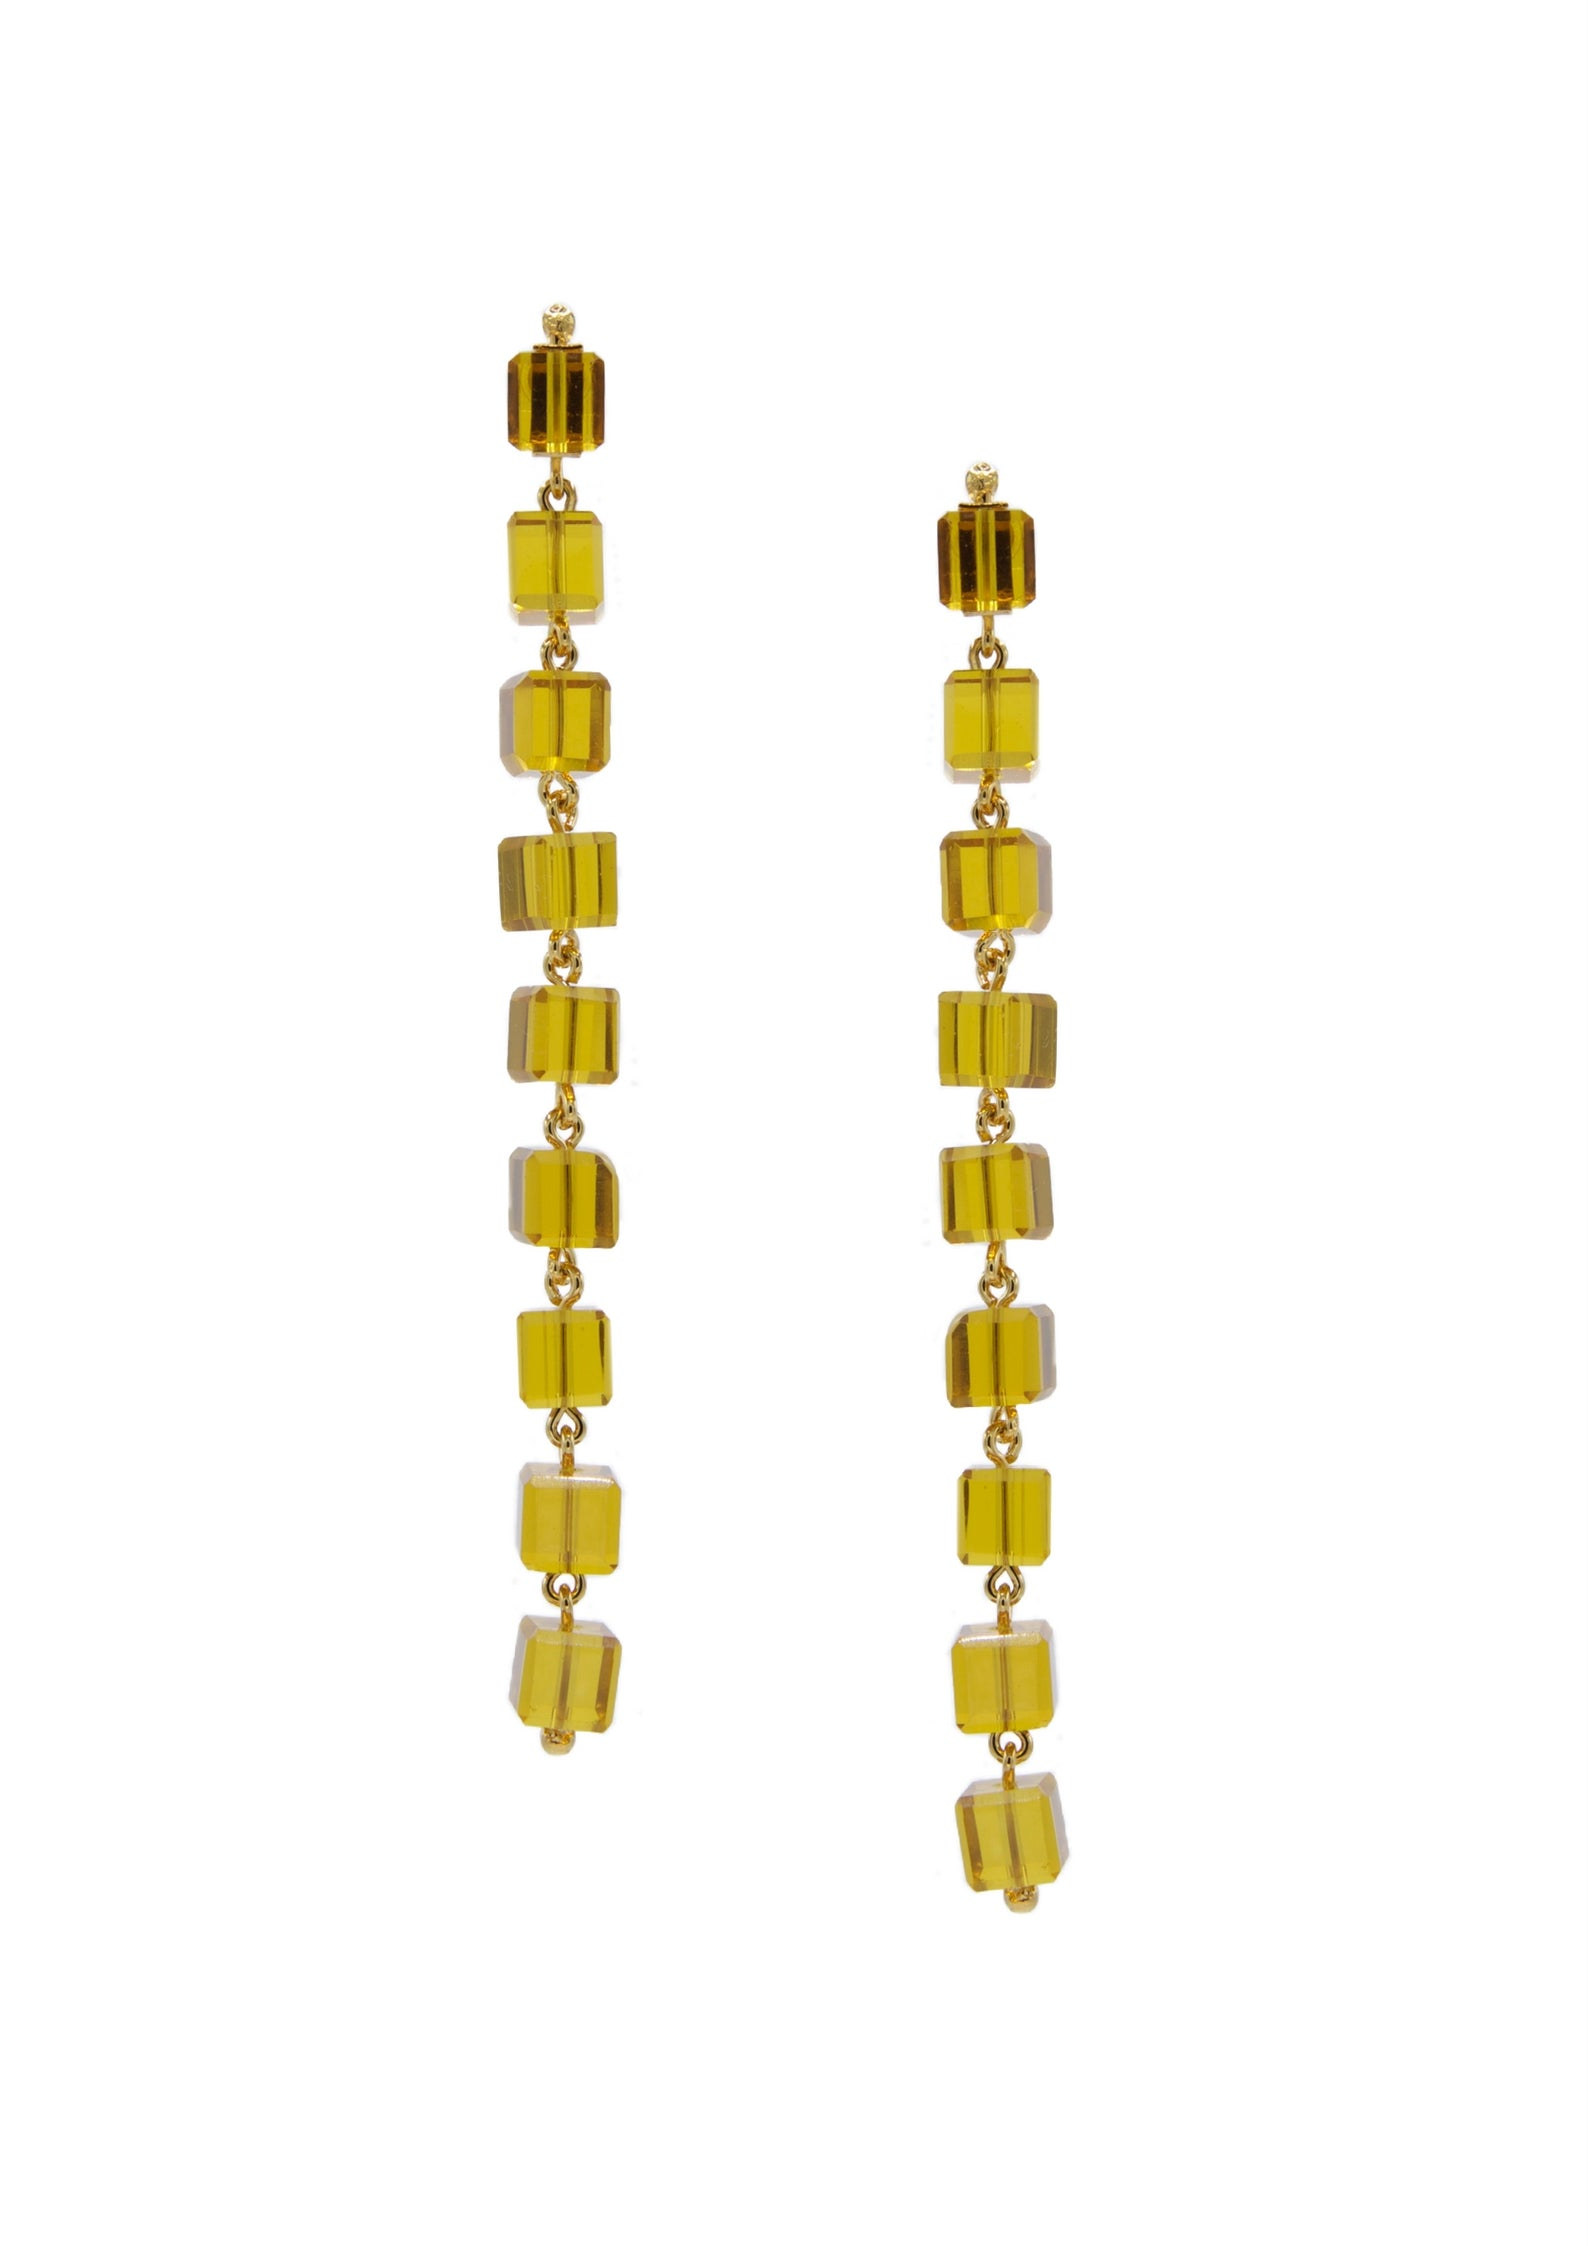 Building Blocks Earrings-Earrings-JAREDJAMIN Jewelry Online-JARED JAMIN